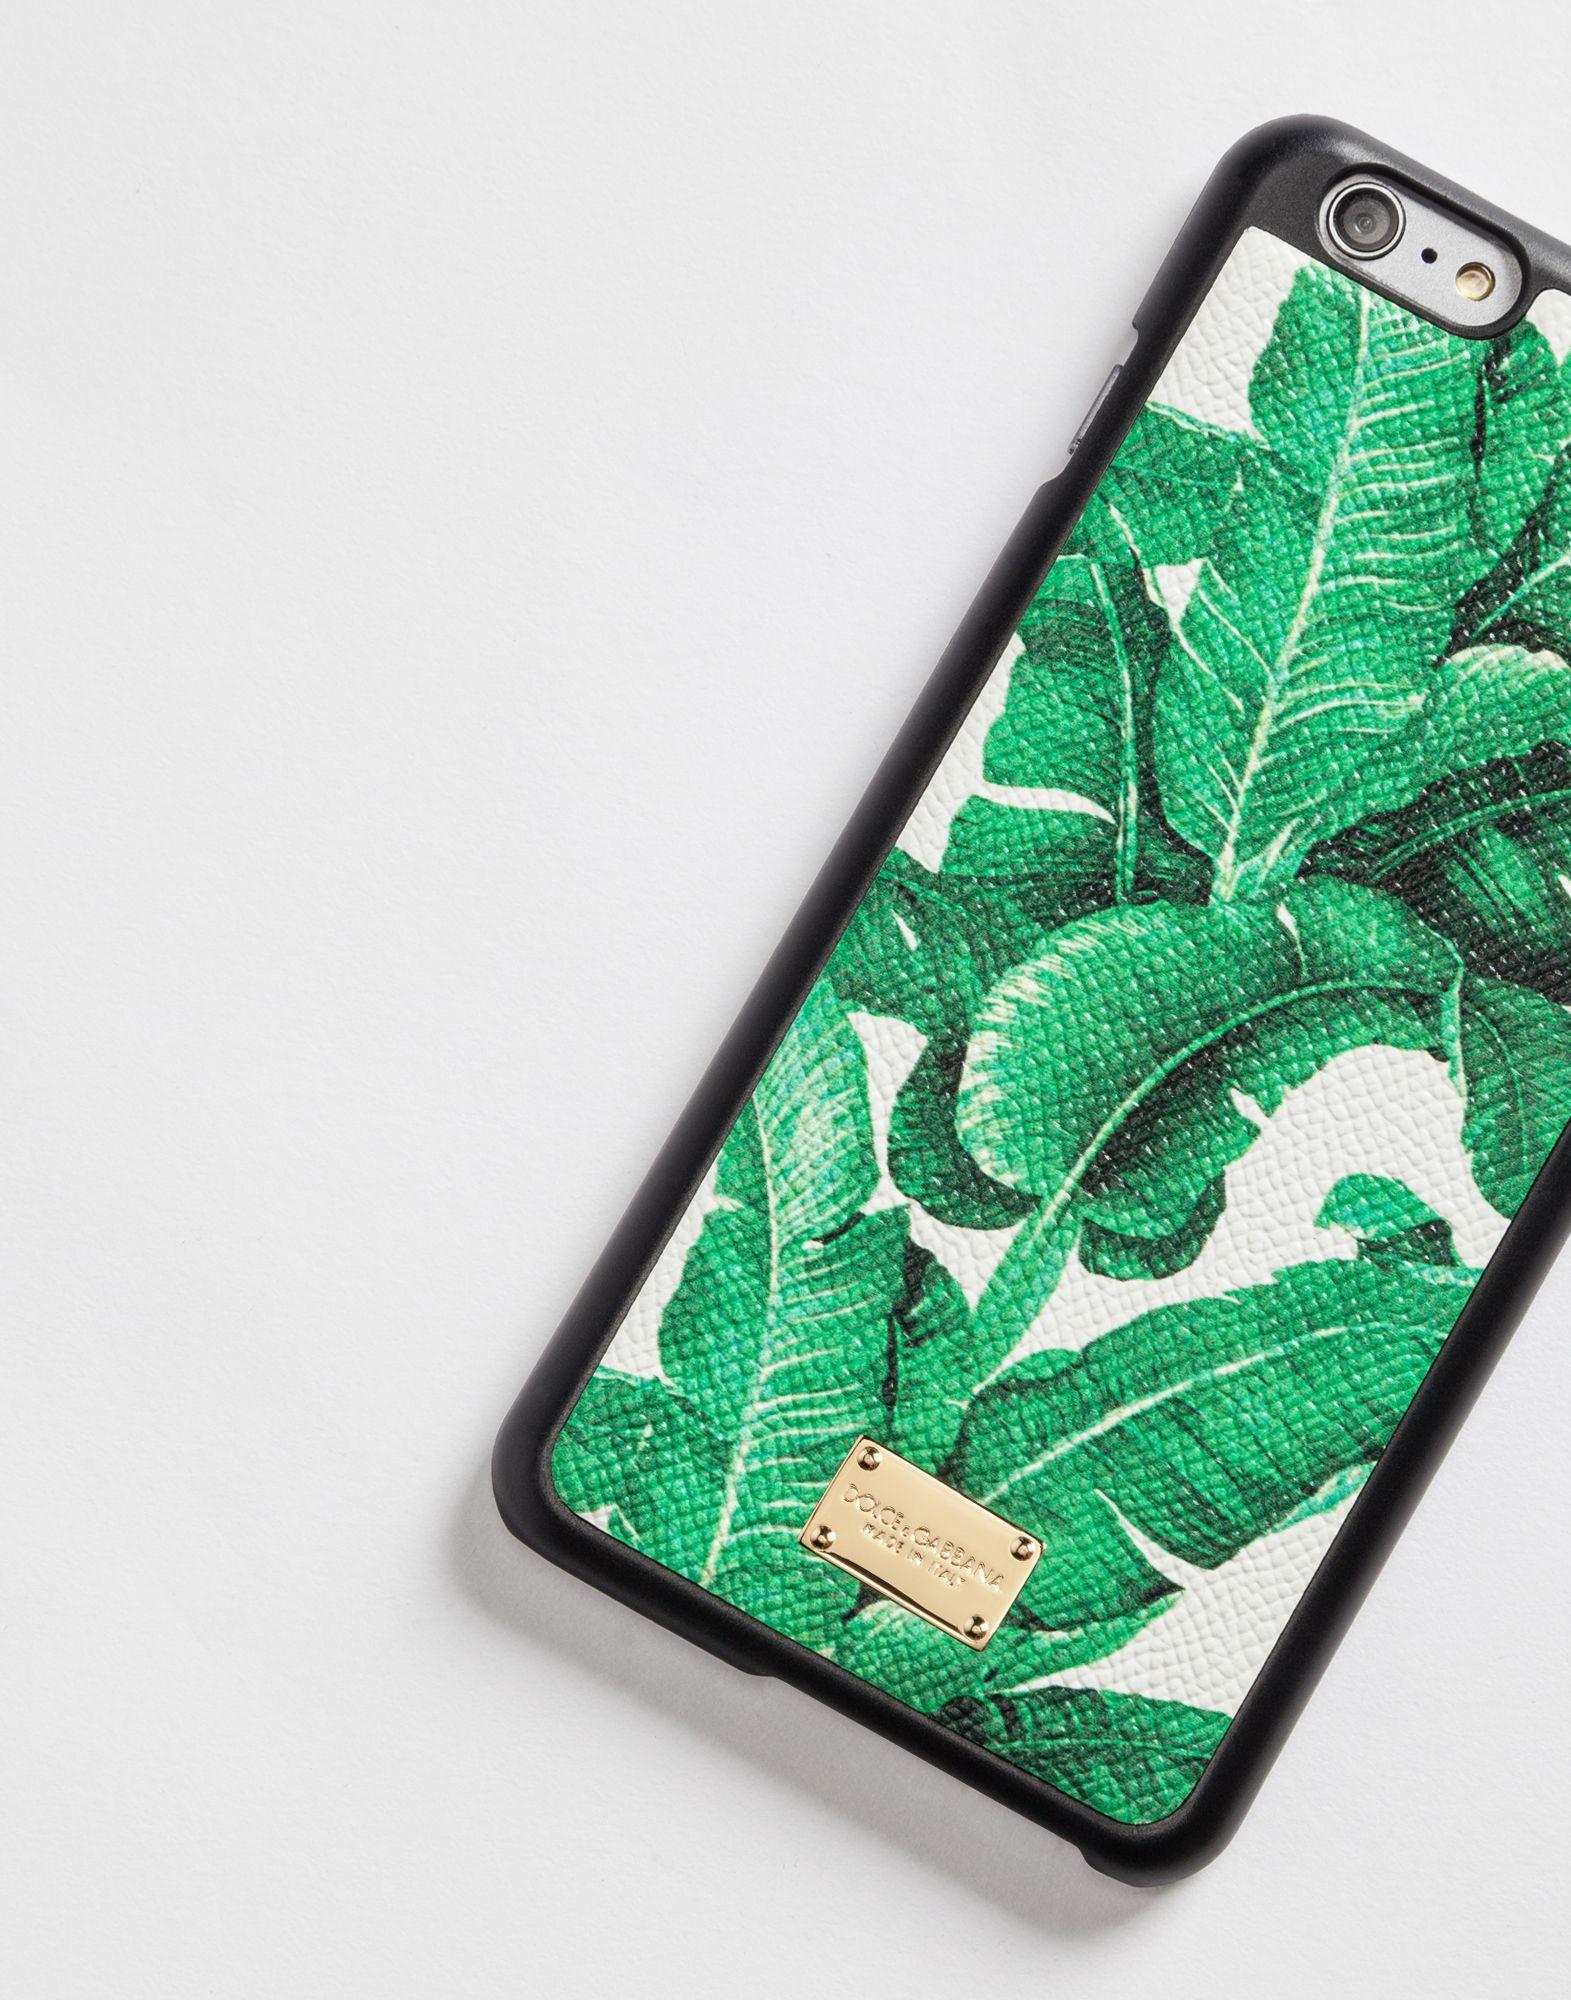 Dolce & gabbana iphone 6 plus cover with printed dauphine leather details, smartphone case women | dg online store, d&g